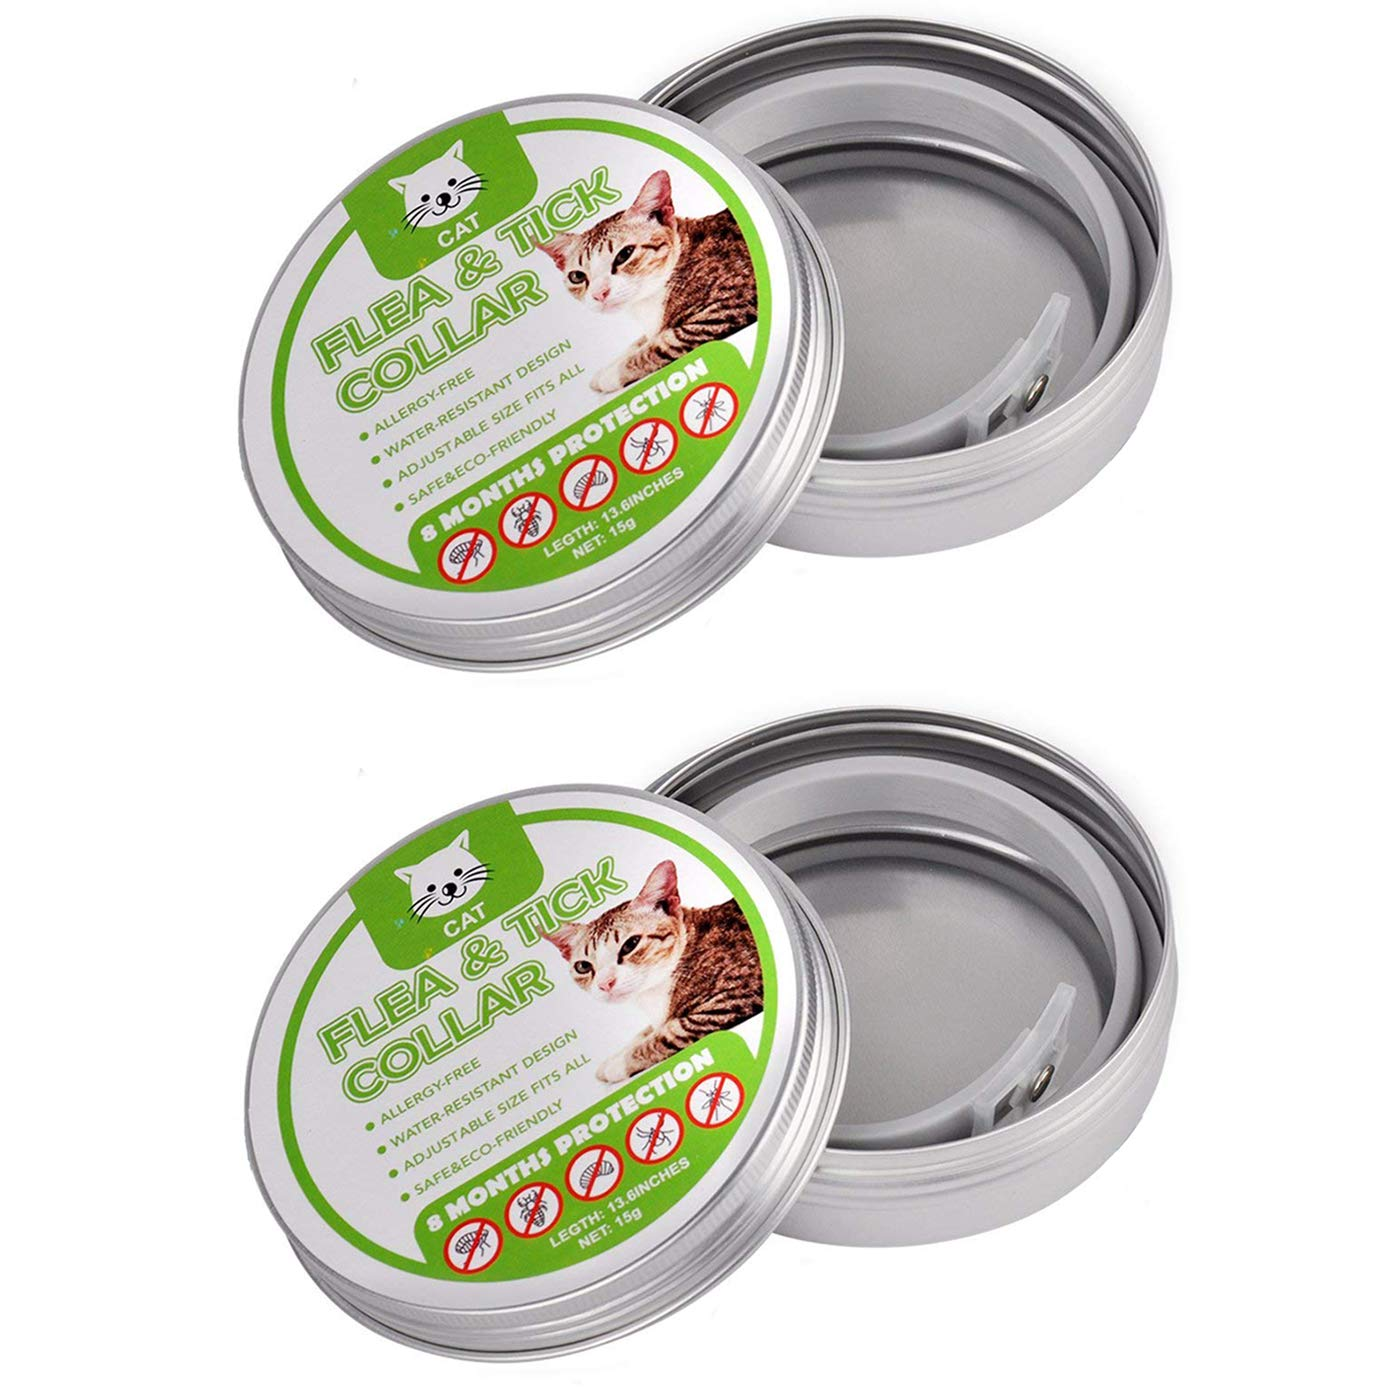 Flea and Tick Collar for Cats - Adjustable Waterproof Natural 8 Month Protection & Prevention From Fleas Ticks Mosquitos Larvae Lice Treatment